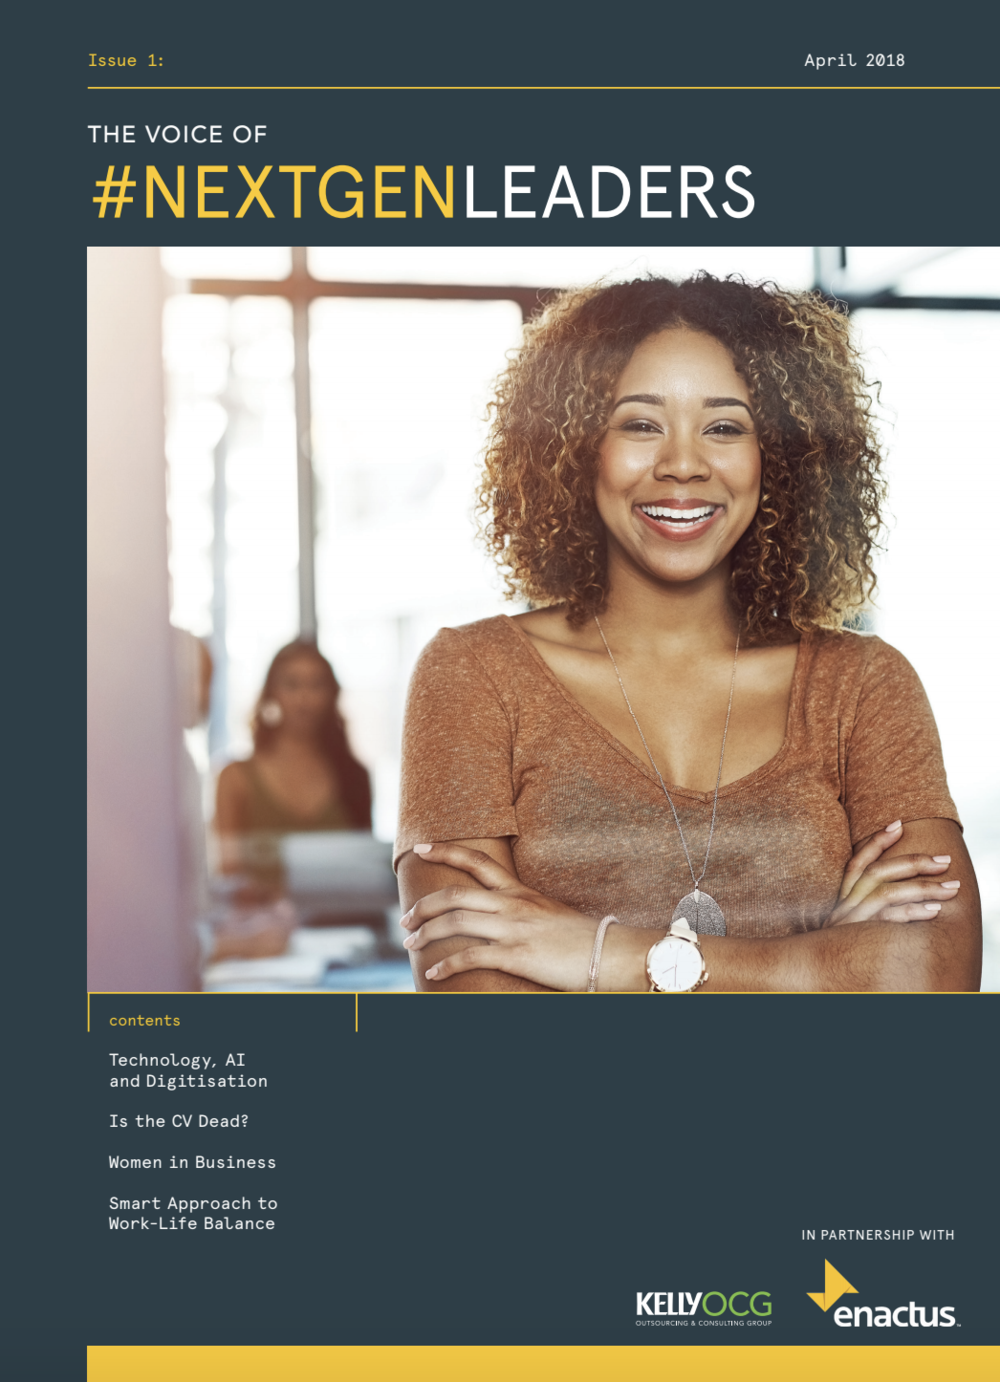 Enactus UK and Kelly OCG #NextGenLeaders Report